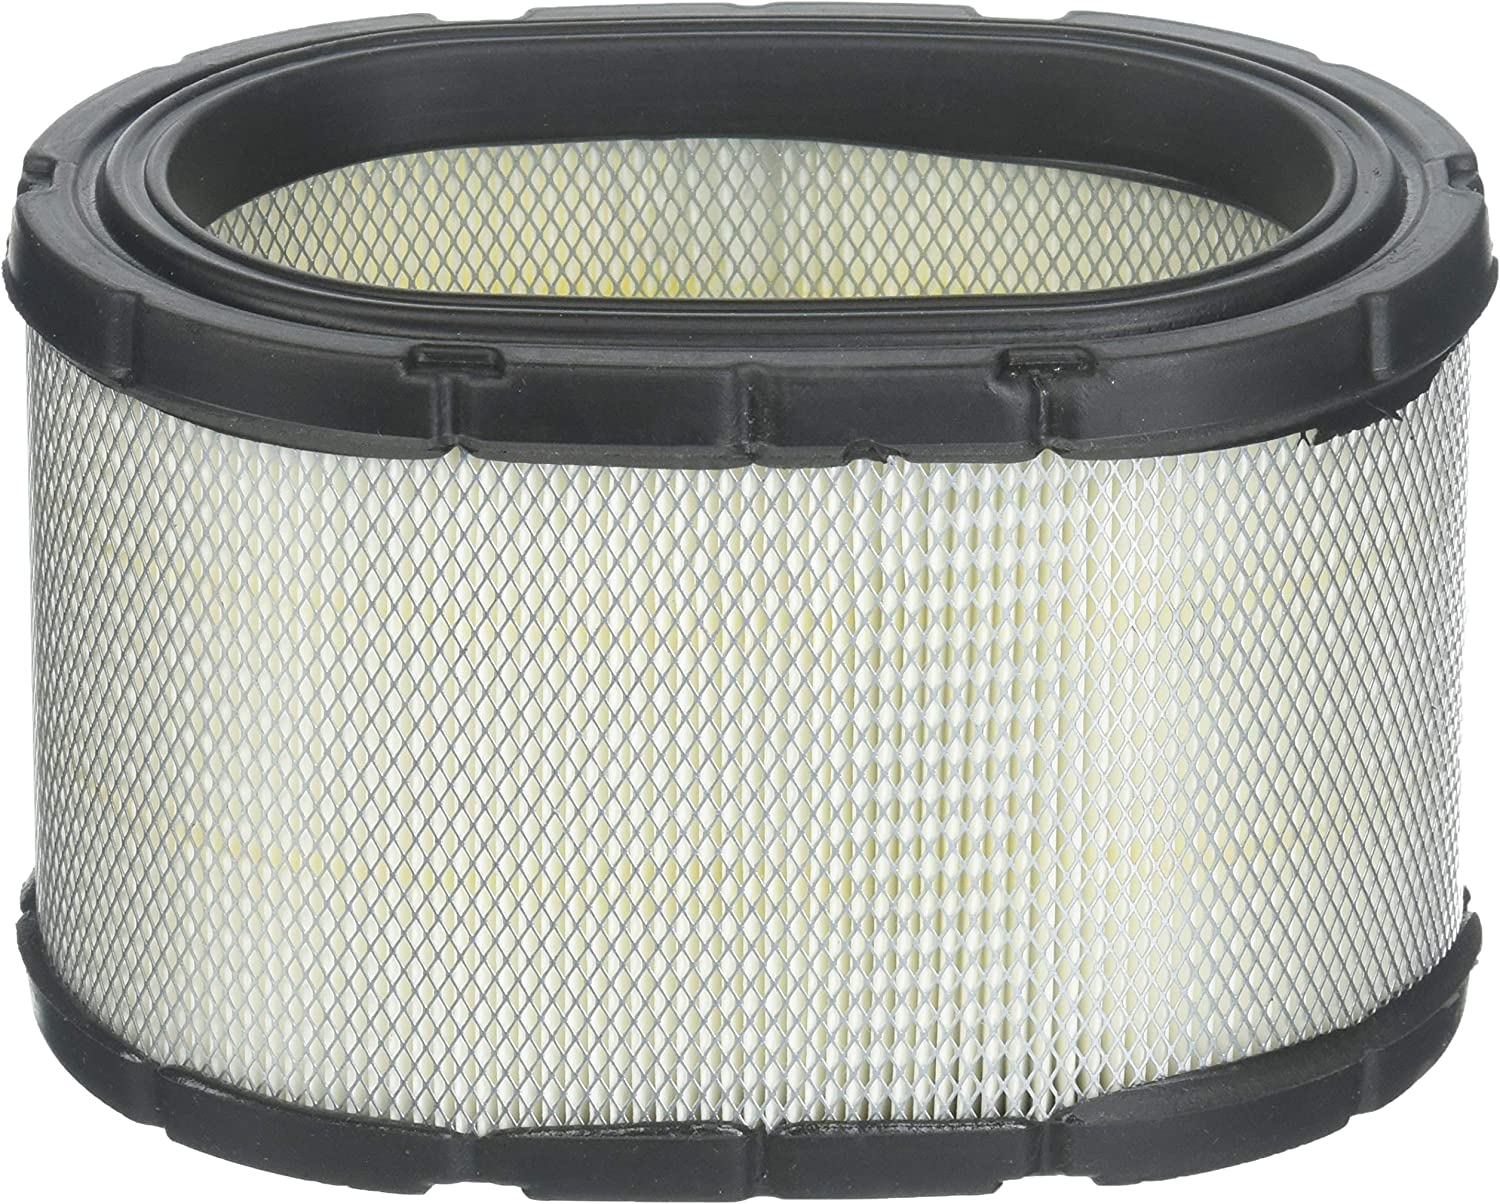 Air Filter 4-7//16 to 6-19//32 x 4-1//16 in